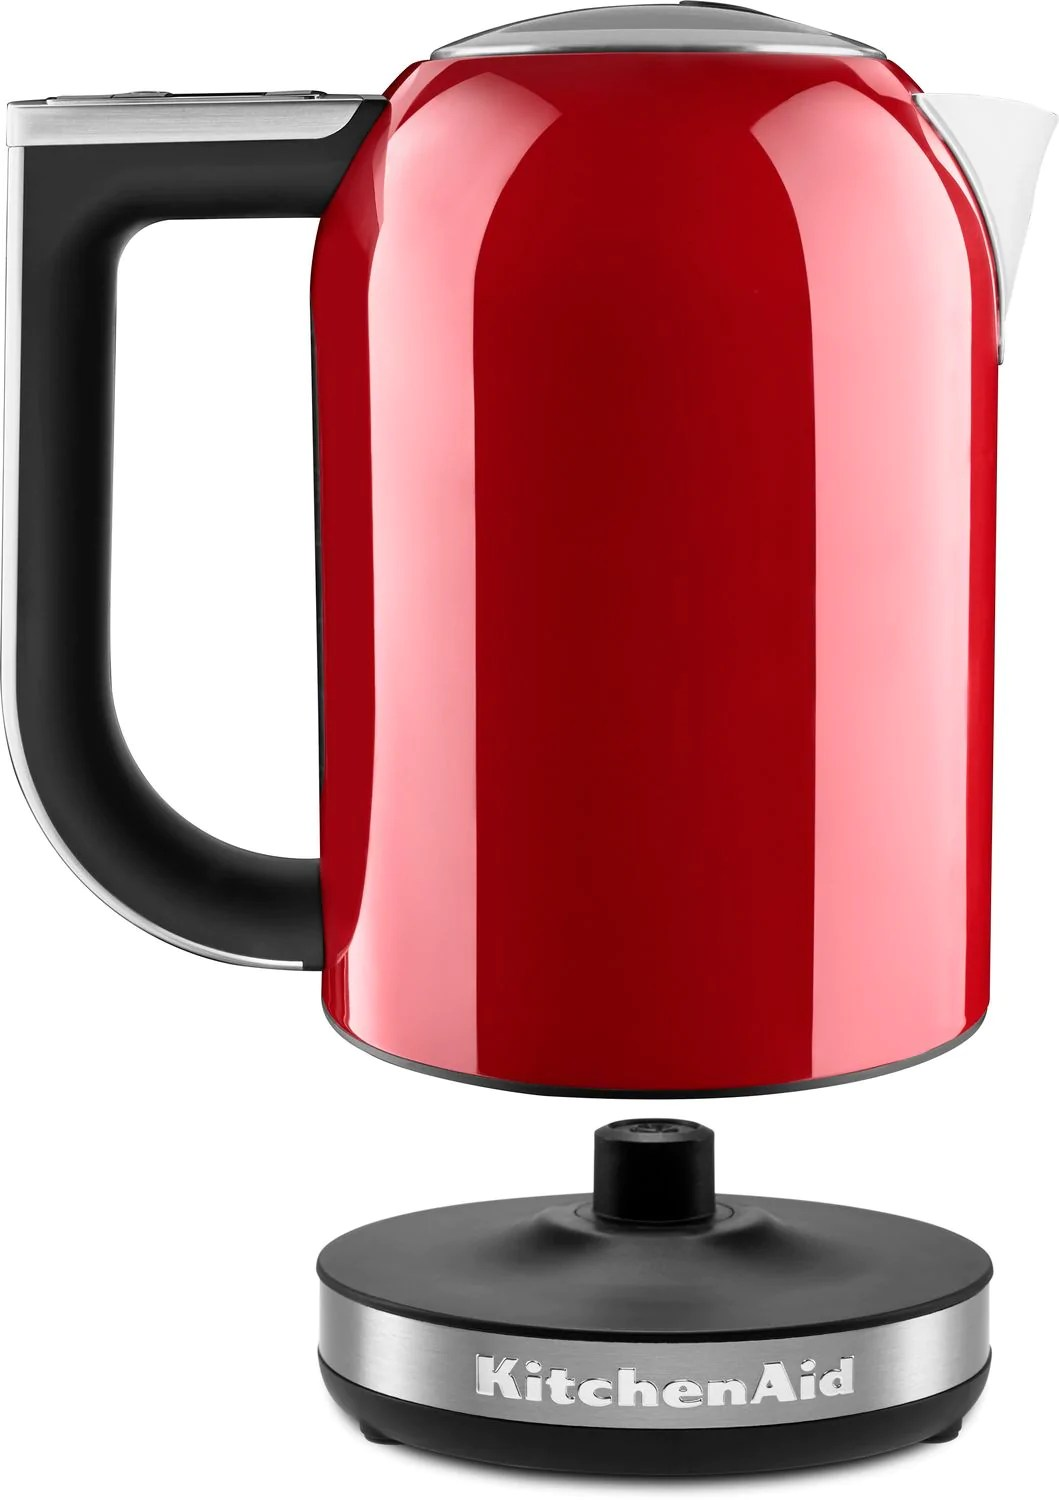 kitchen aid electric kettle furniture for small kitchenaid empire red 1 7 l kek1722er leon s previous next